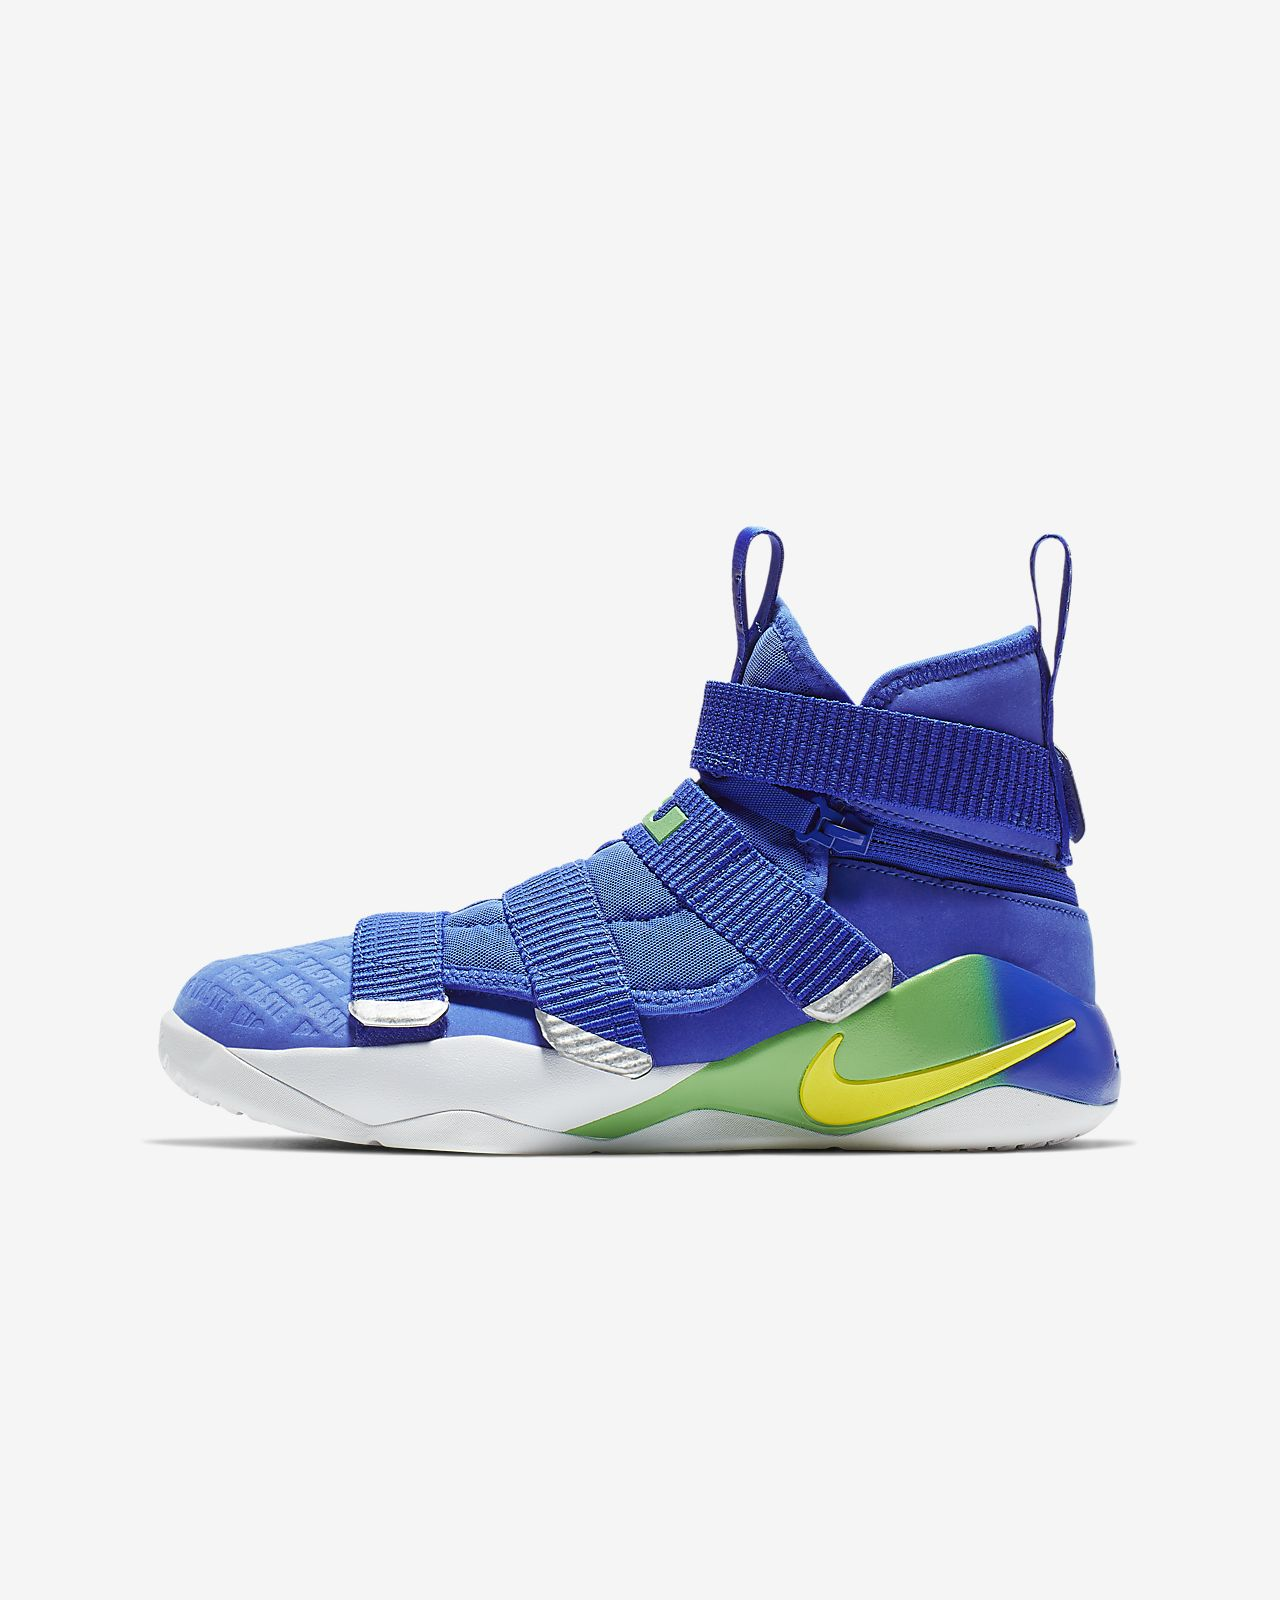 LeBron Soldier 11 FlyEase Older Kids' Basketball Shoe